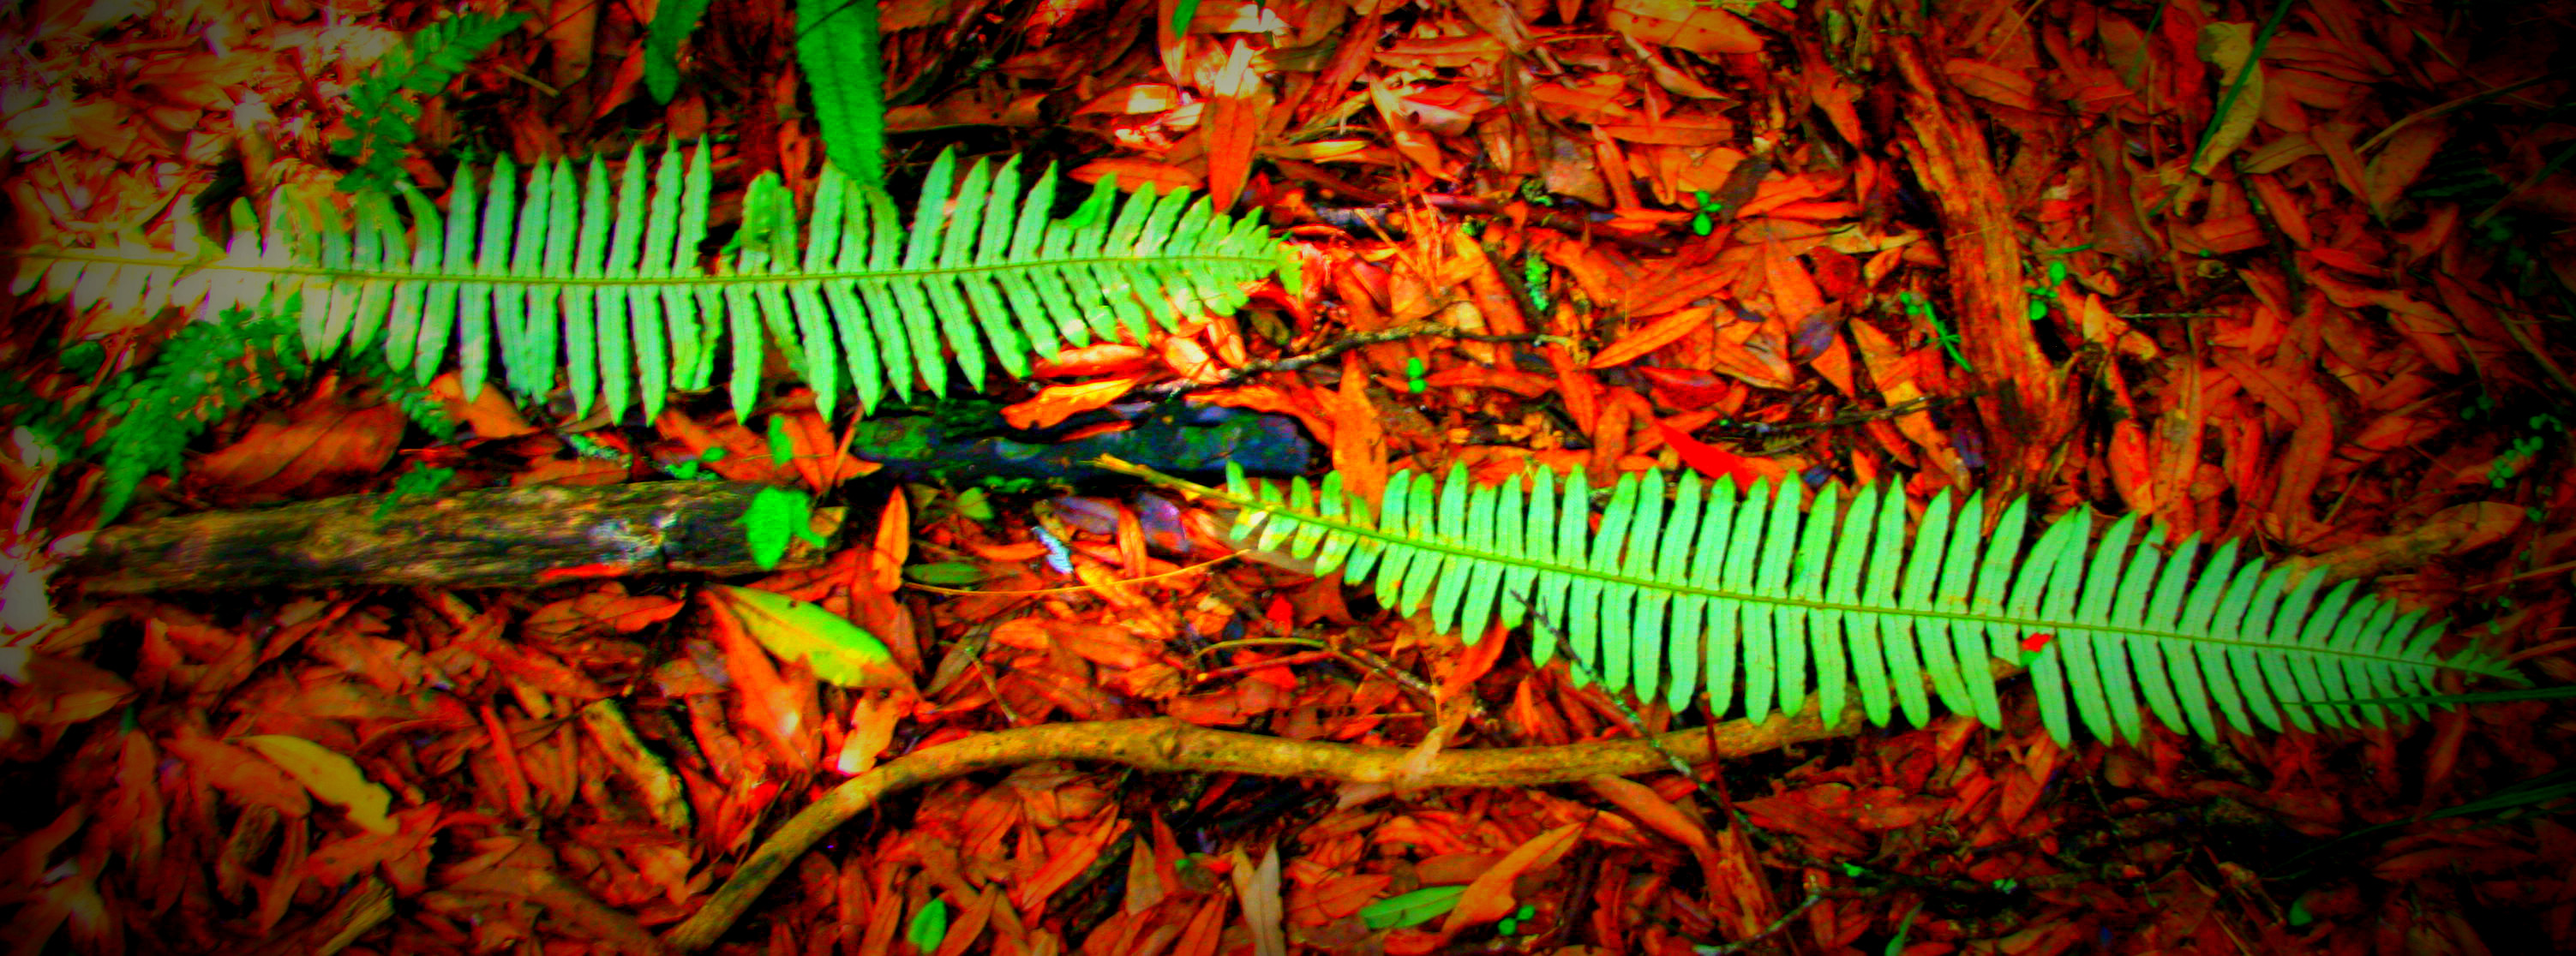 fern leaves on the forest floor